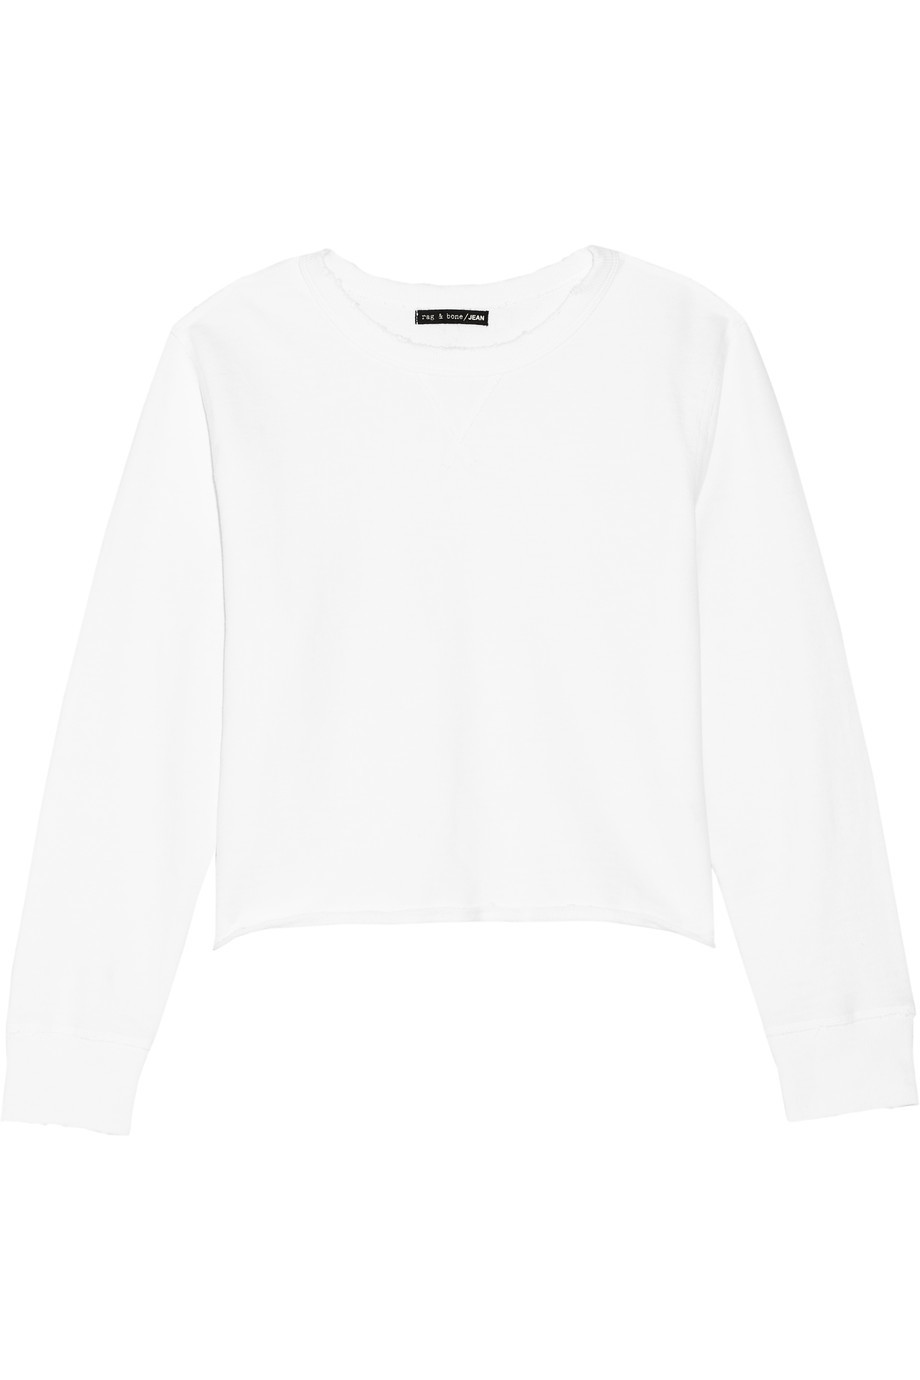 Pier Cotton Sweatshirt White - pattern: plain; style: sweat top; predominant colour: white; occasions: casual; length: standard; fibres: cotton - 100%; fit: body skimming; neckline: crew; sleeve length: long sleeve; sleeve style: standard; texture group: cotton feel fabrics; pattern type: fabric; season: s/s 2016; wardrobe: basic